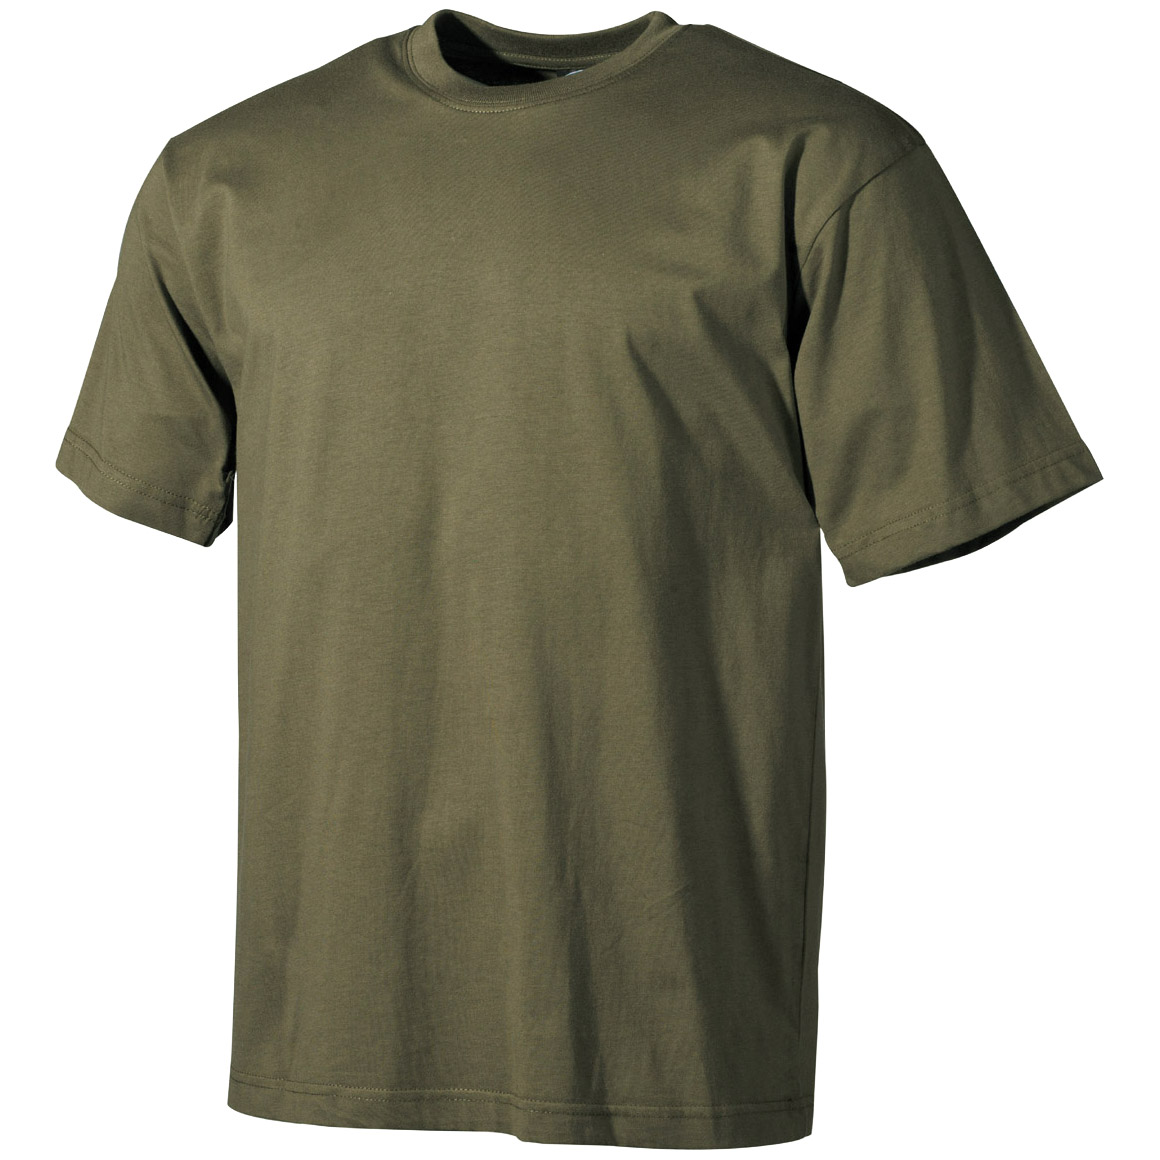 Army cadet tee mens green combat t shirt military cotton for Green mens t shirt